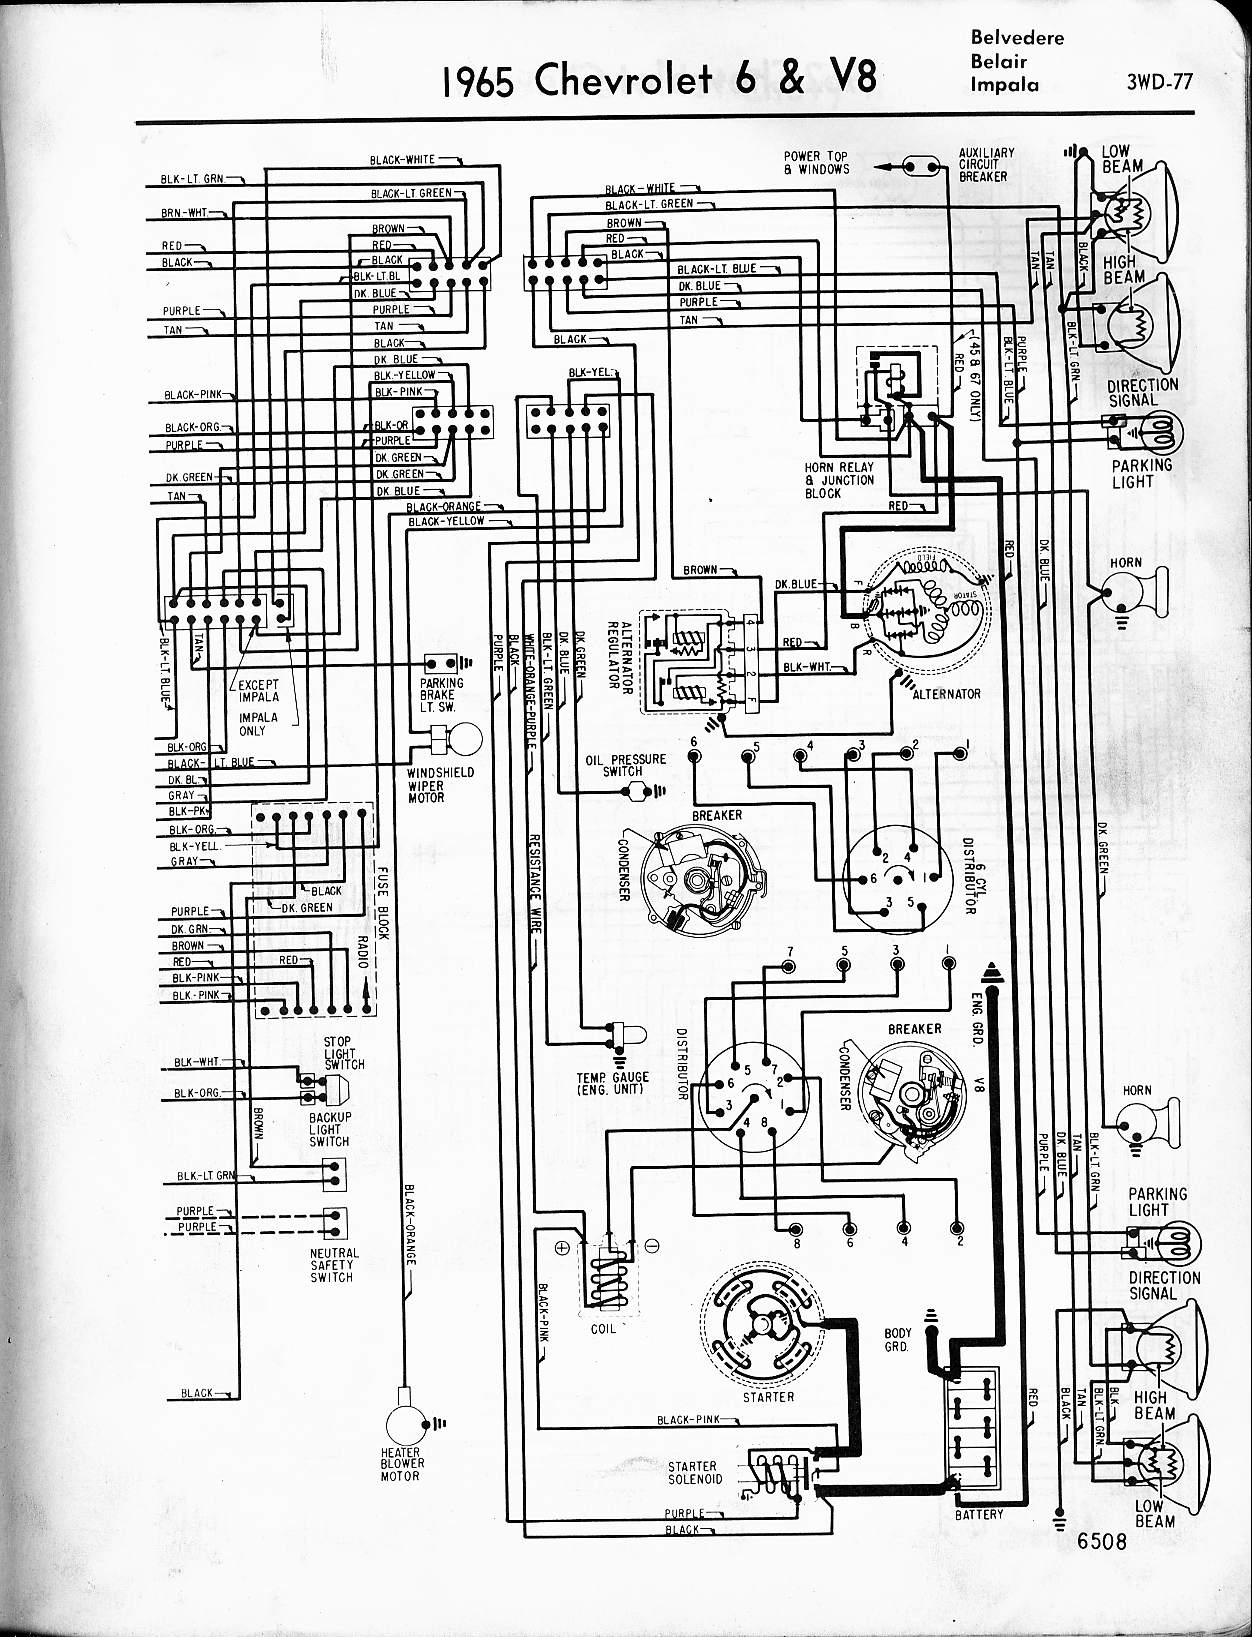 MWireChev65_3WD 077 chevy diagrams 1970 chevelle dash wiring diagram at couponss.co